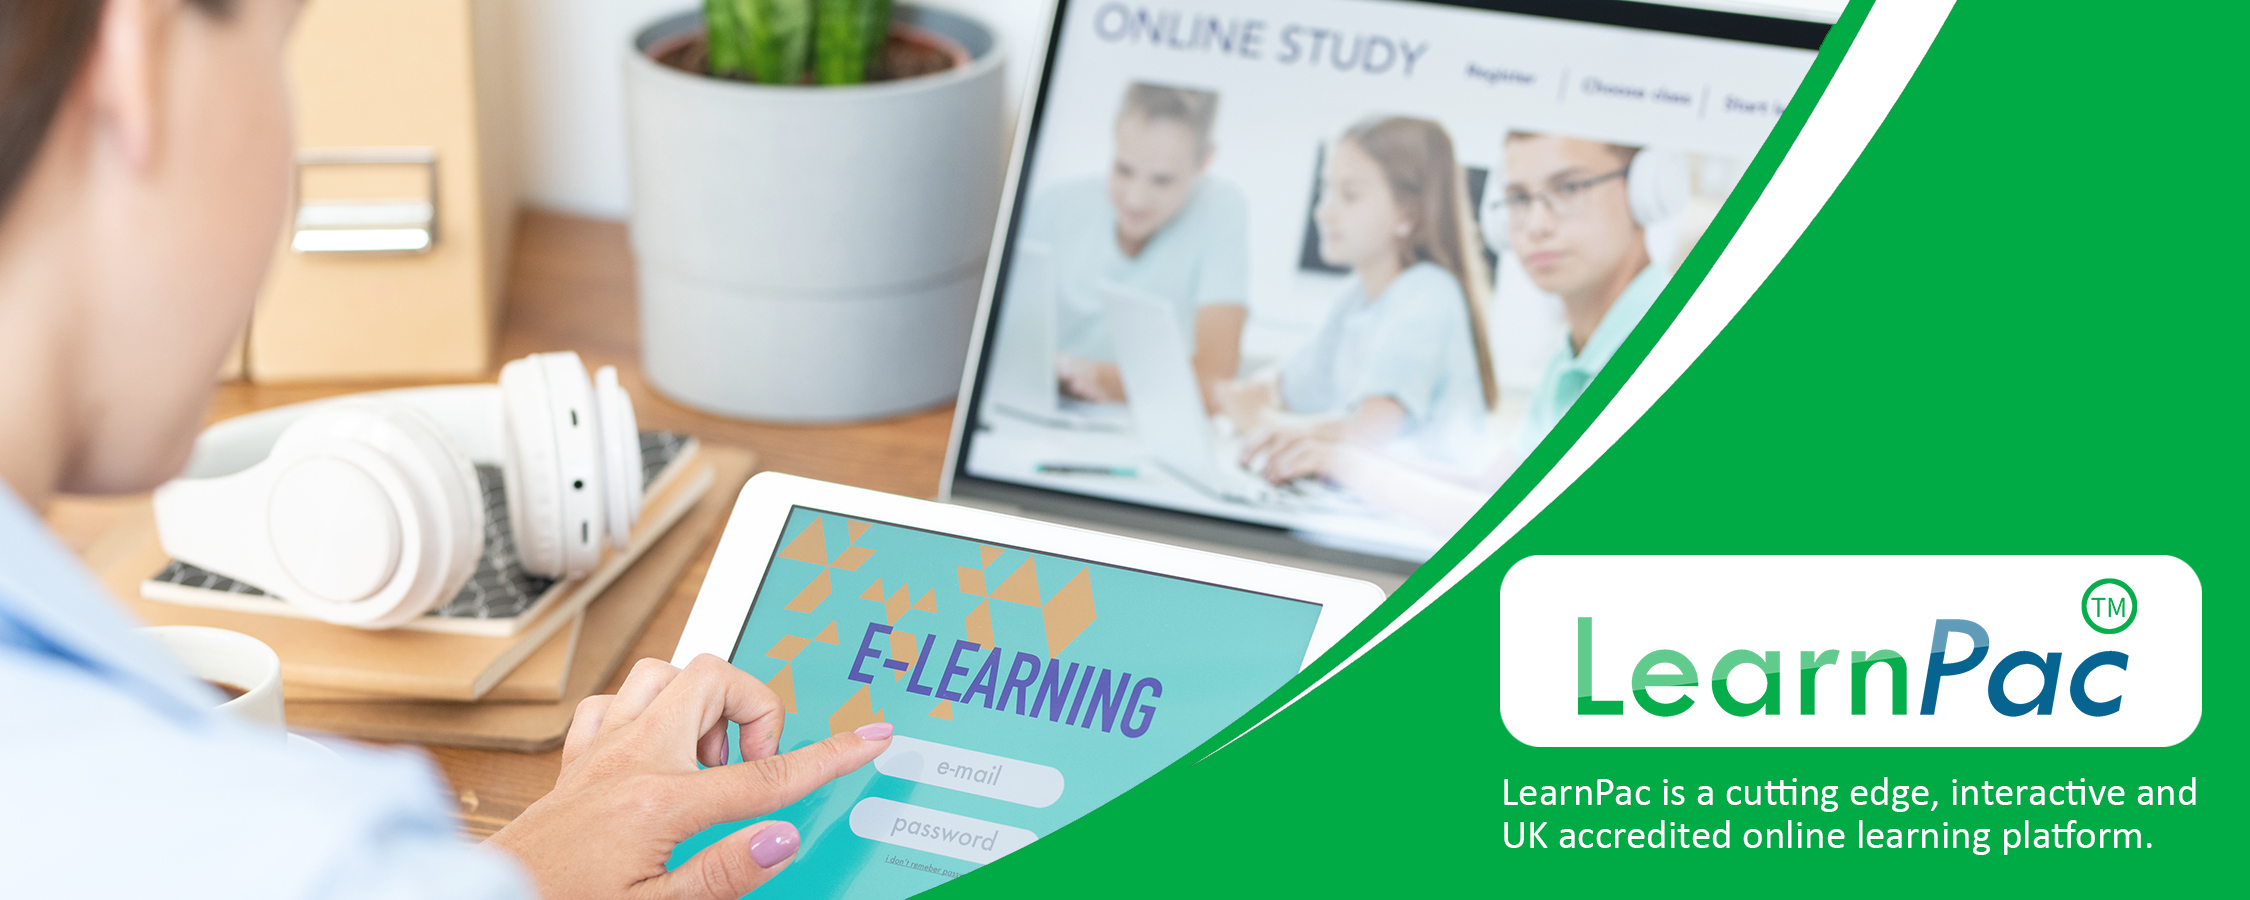 Care Certificate Standard 13 - E-Learning Courses - LearnPac Systems UK -